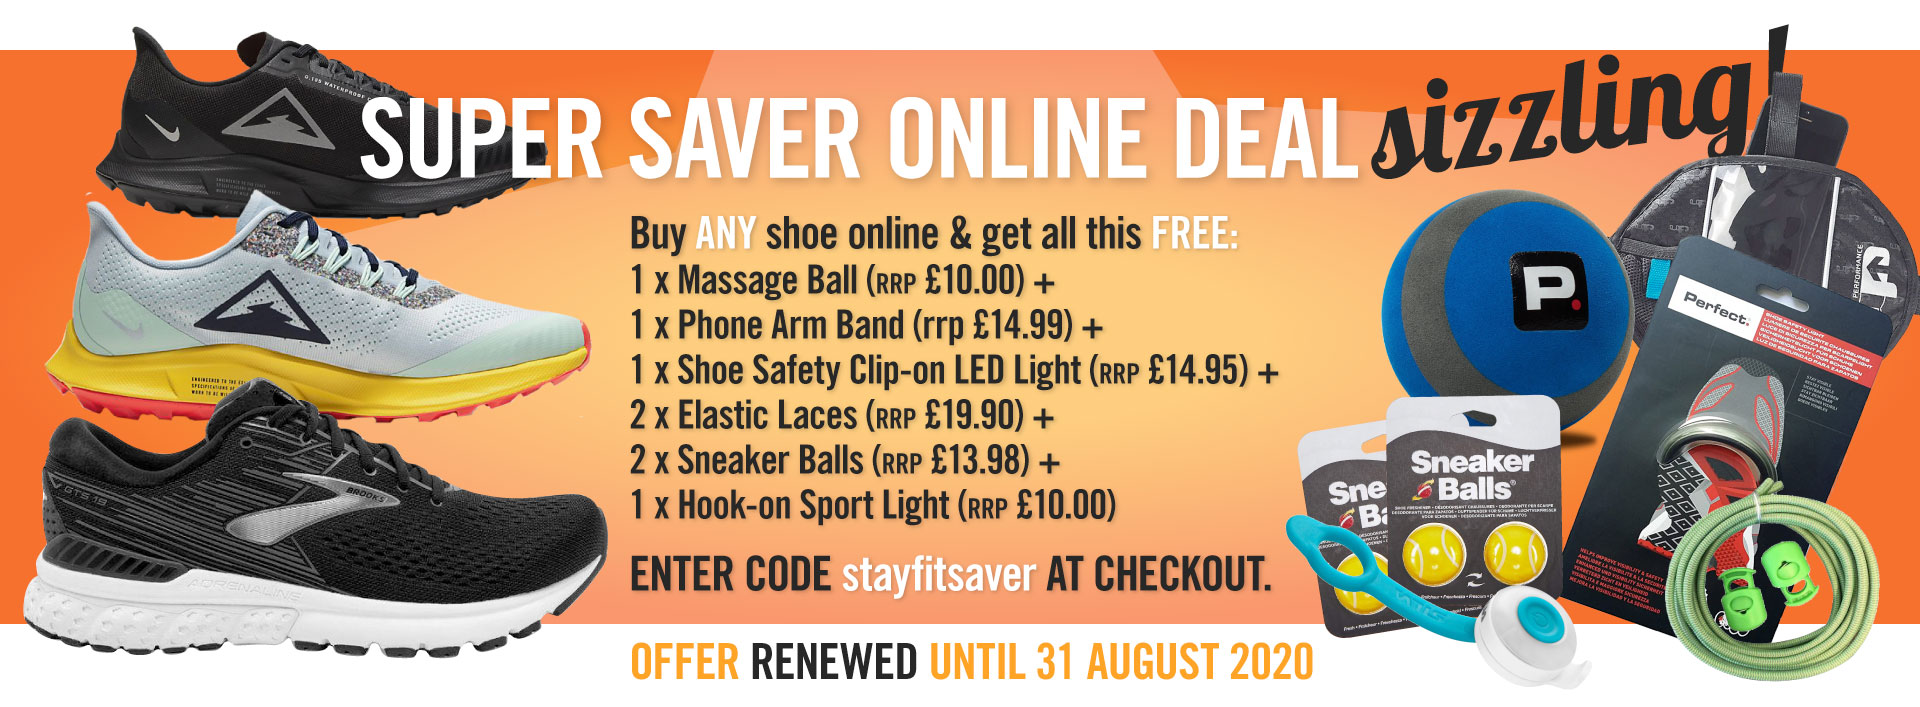 Super offer - buy any shoe and get 84GBP of extras FREE